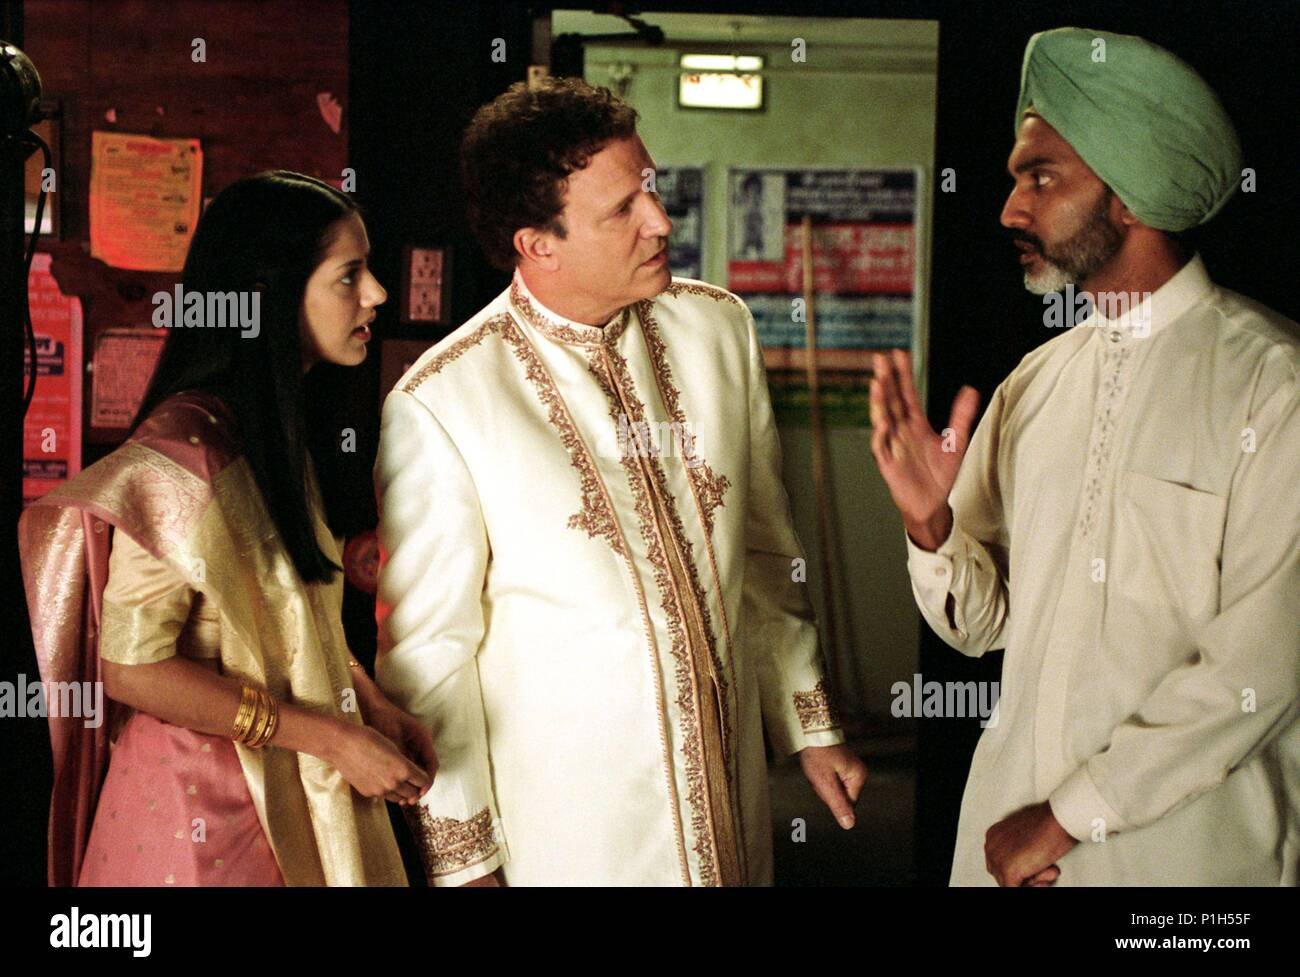 Original Film Title: LOOKING FOR COMEDY IN THE MUSLIM WORLD.  English Title: LOOKING FOR COMEDY IN THE MUSLIM WORLD.  Film Director: ALBERT BROOKS.  Year: 2005.  Stars: ALBERT BROOKS; SHEETAL SHETH; DUNCAN BRAVO. Credit: WARNER INDEPENDENT PICTURES / TERRELL, LACEY / Album - Stock Image